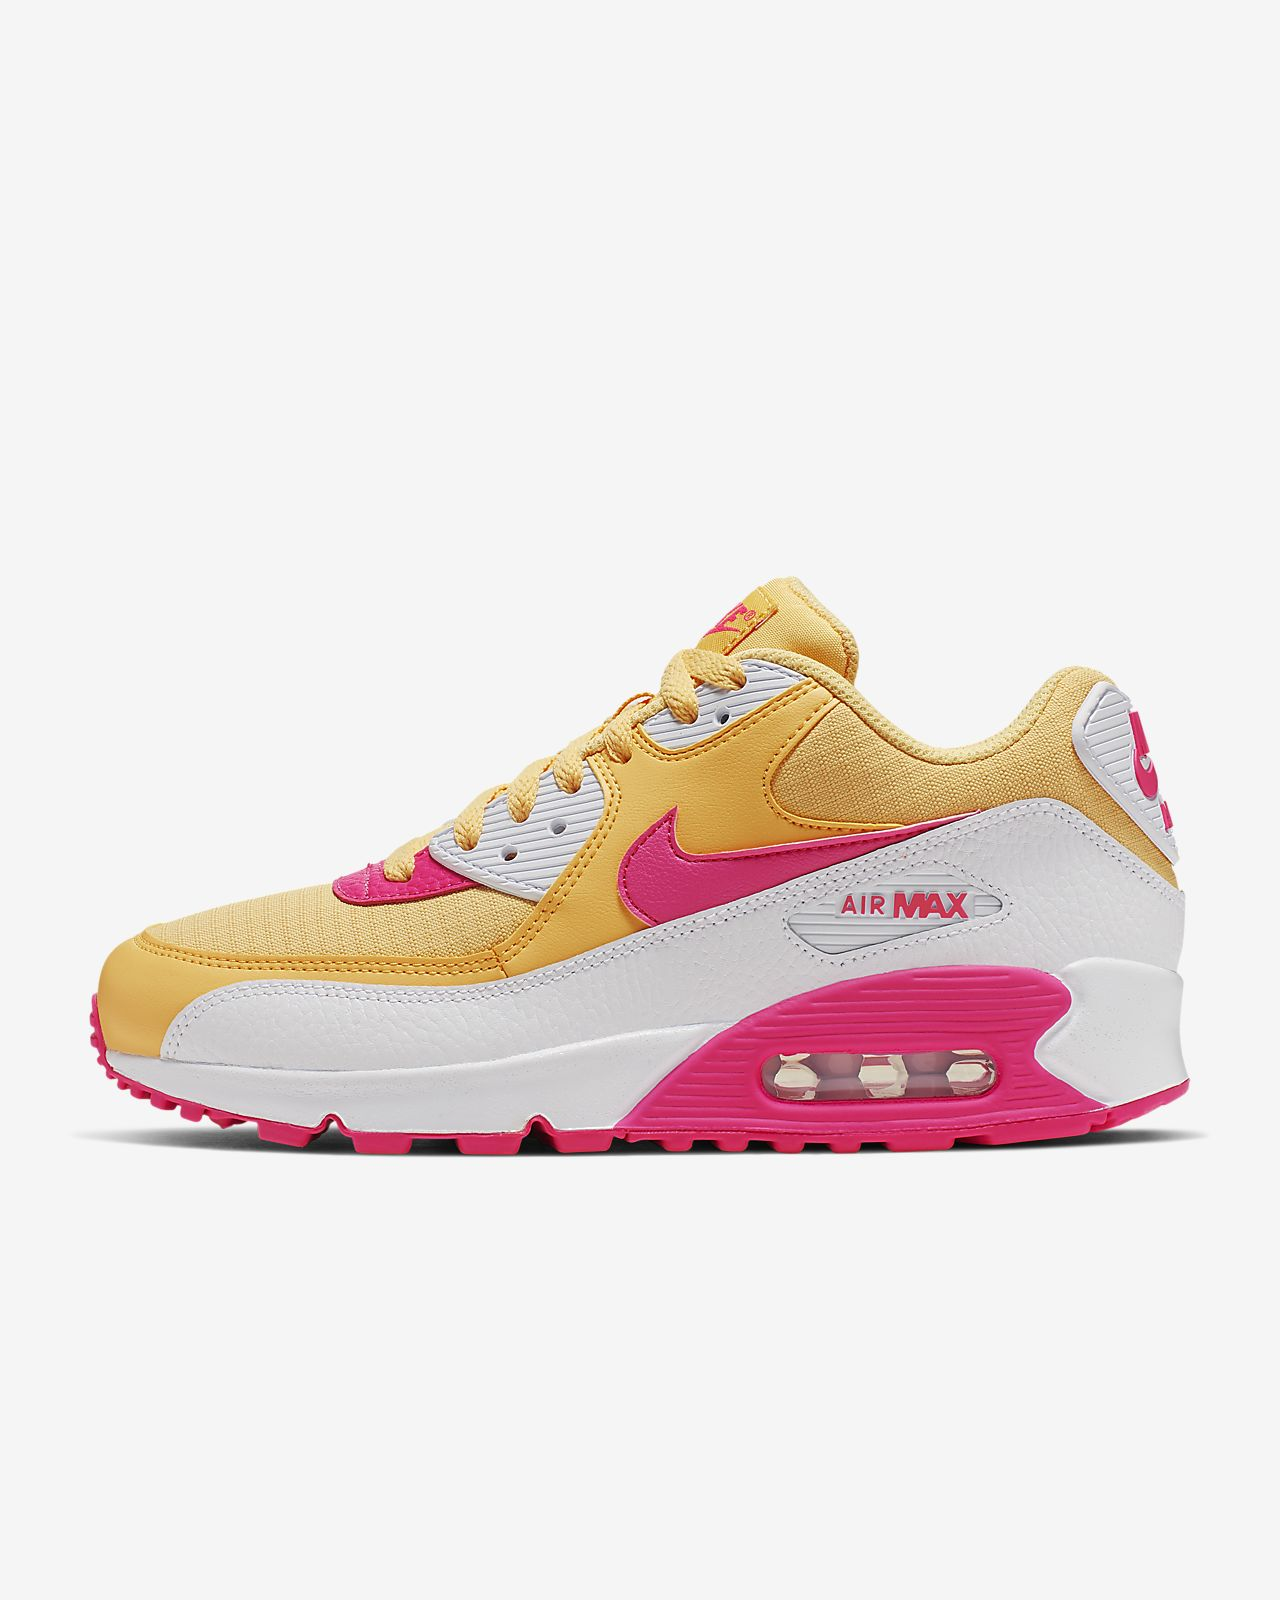 factory authentic 01352 6c71c Nike Air Max 90 Women's Shoe. Nike.com IN